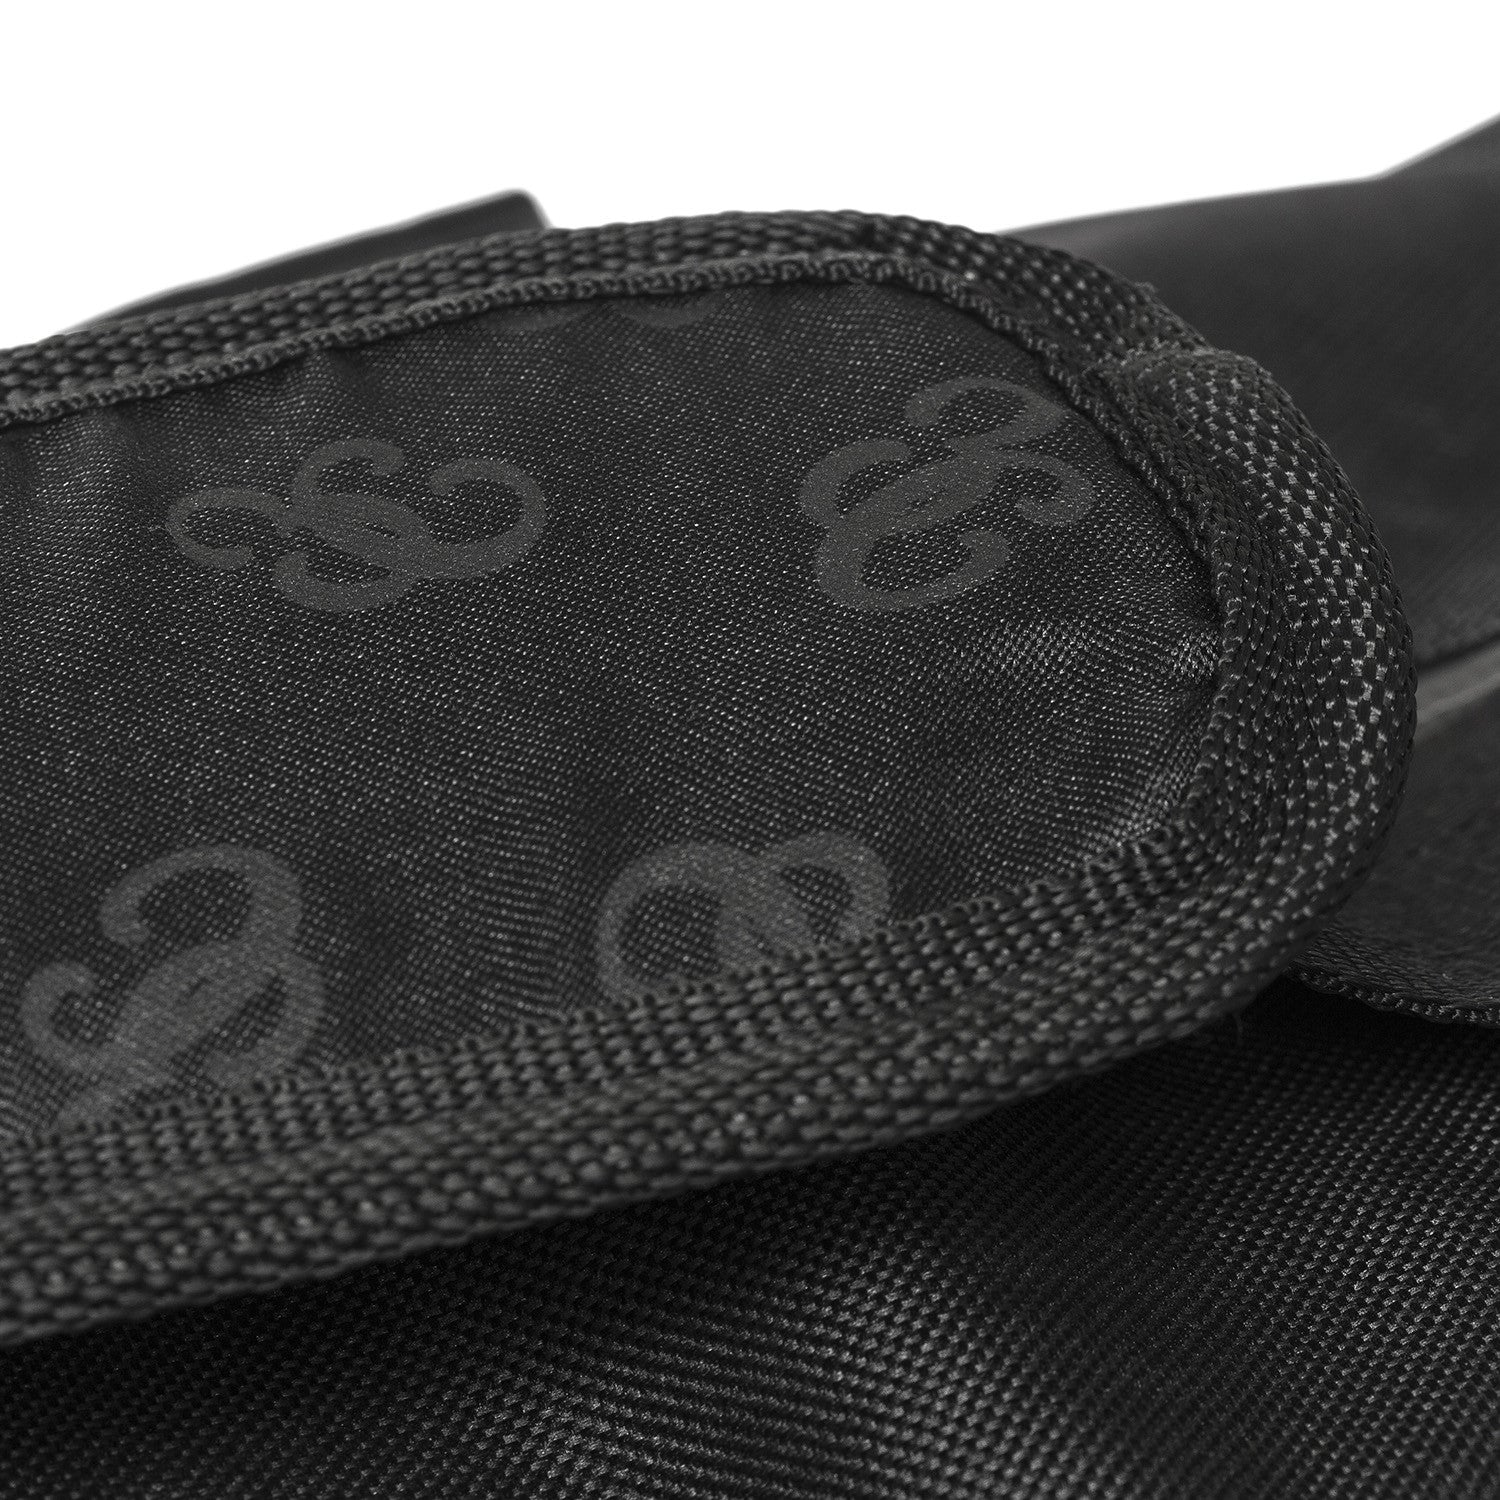 S.D Duffle Bag (Smell Proof) - 3rdchapter - 5